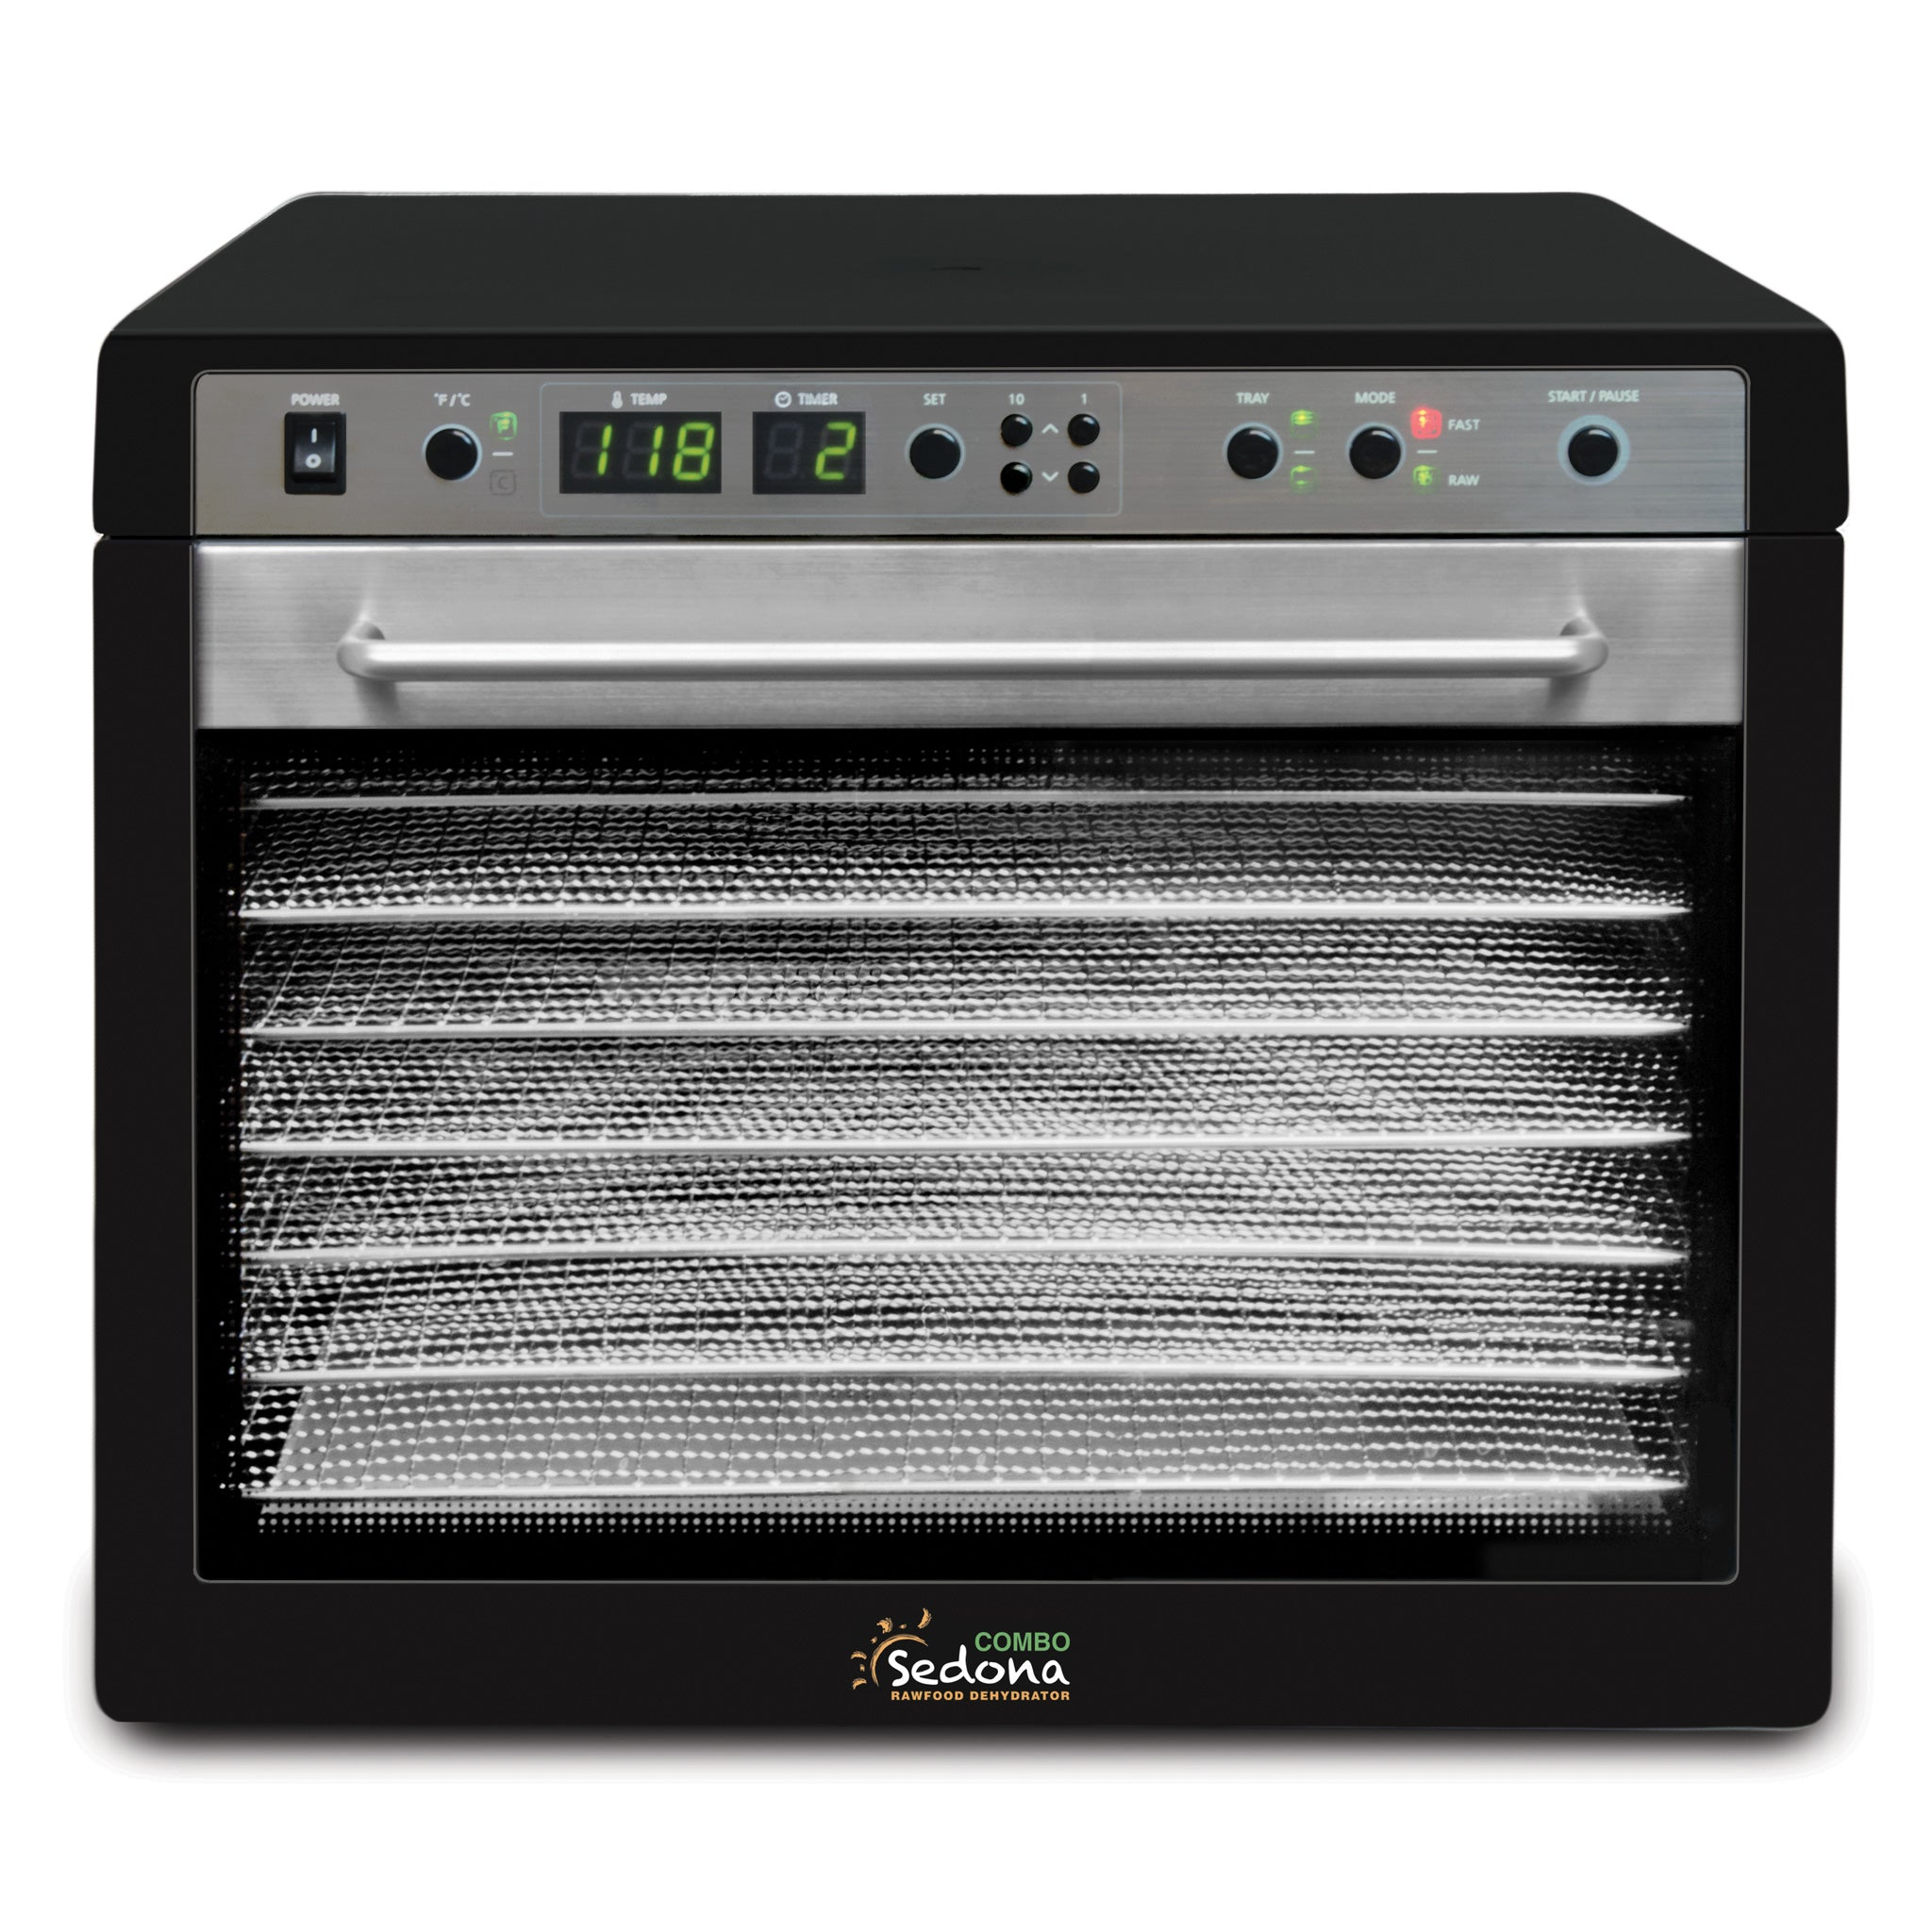 Sedona Combo Food Dehydrator with Stainless Steel Trays SD-S9150-B - Tribest